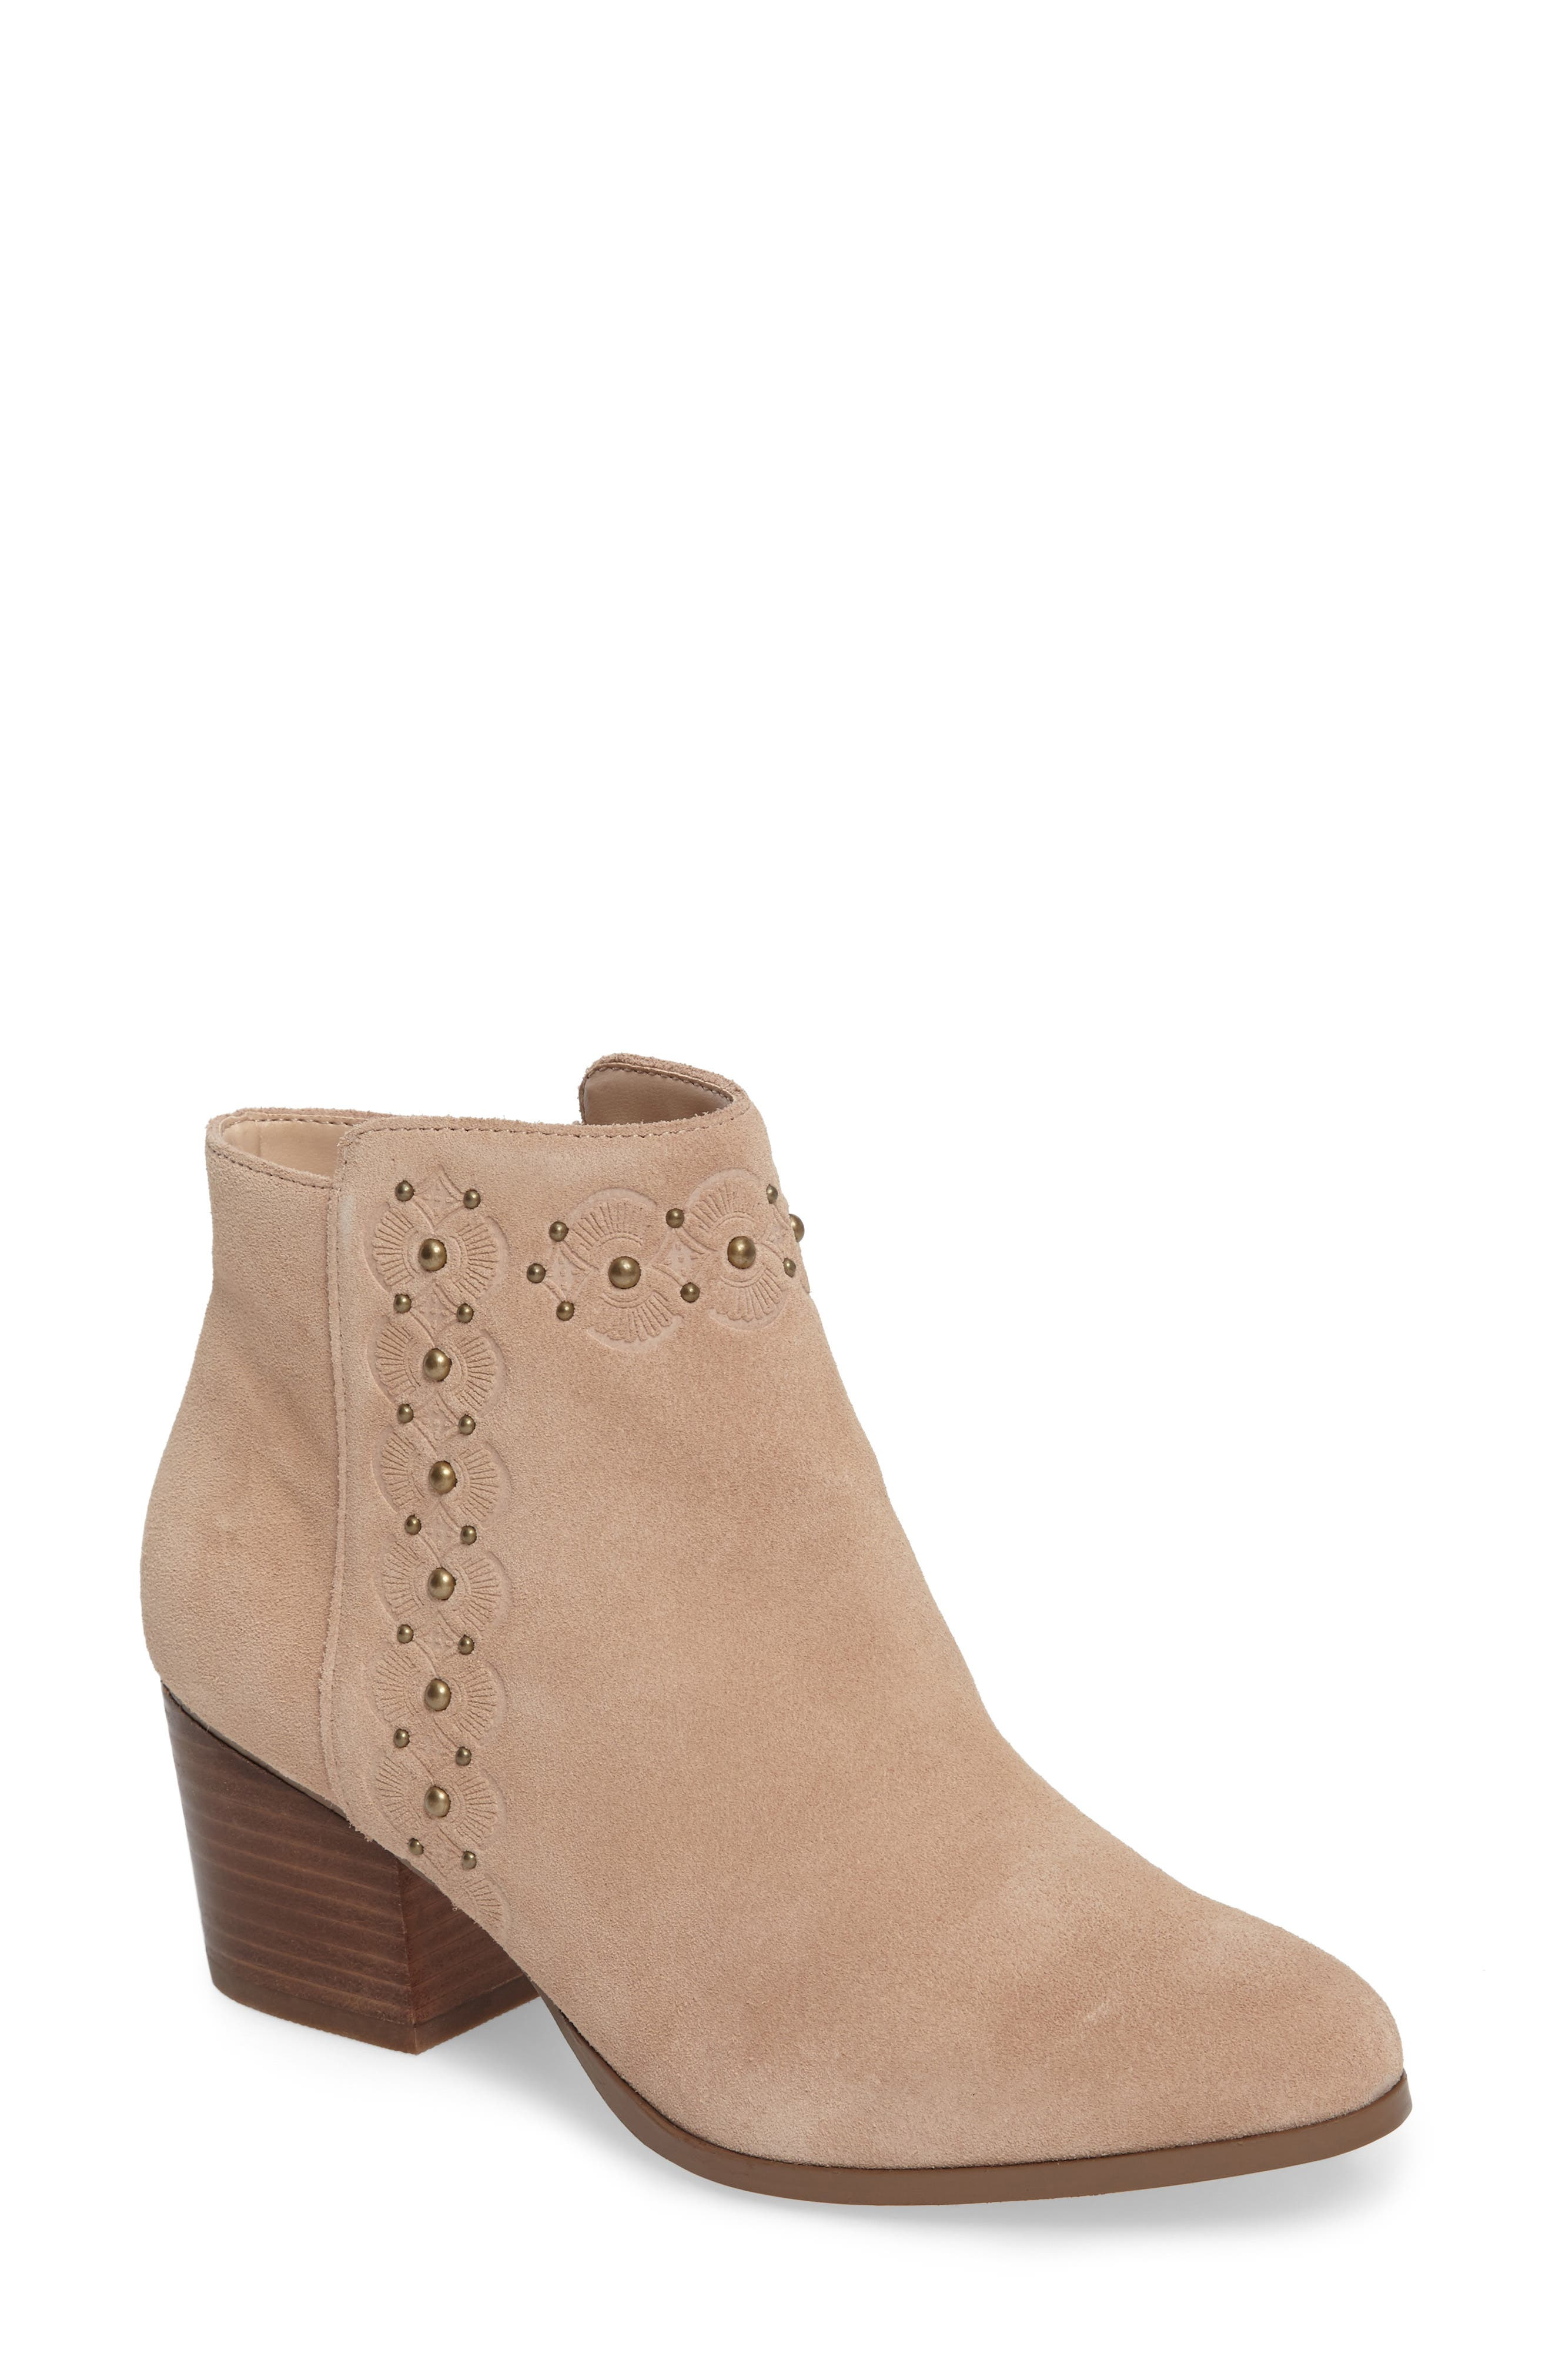 Alternate Image 1 Selected - Sole Society Gala Studded Embossed Bootie (Women)